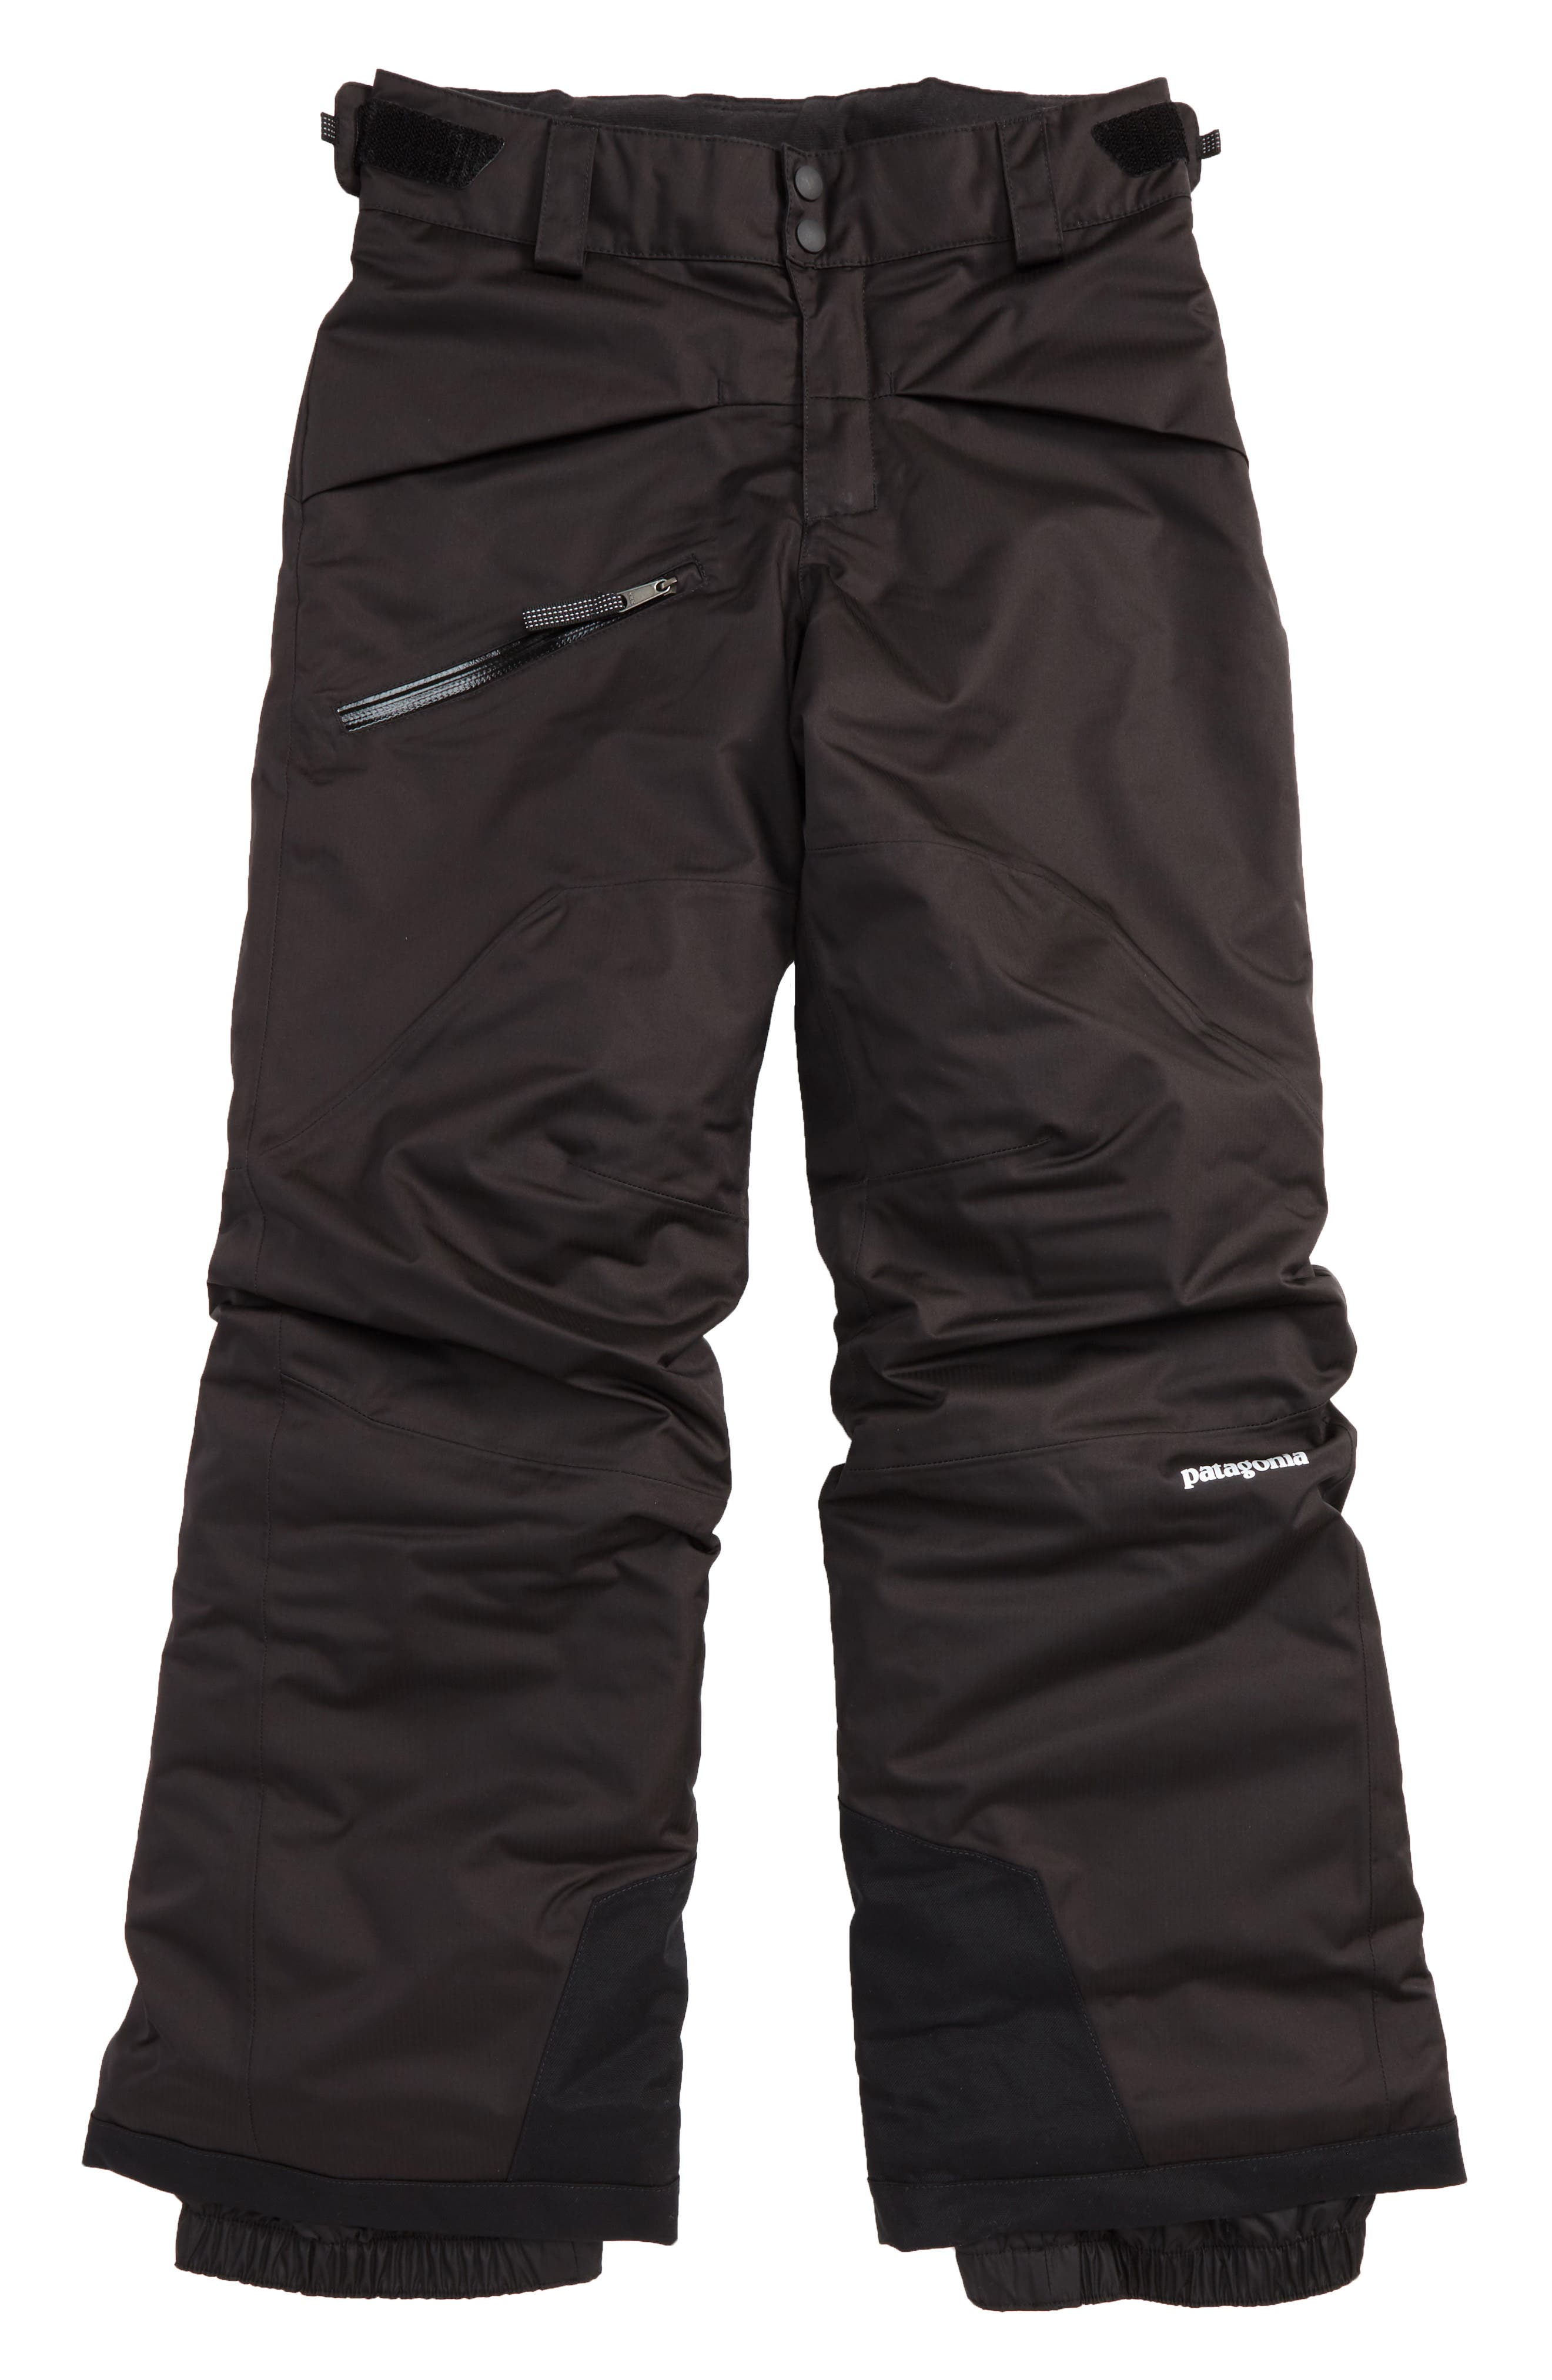 Snowshot Insulated Snow Pants,                         Main,                         color, Black